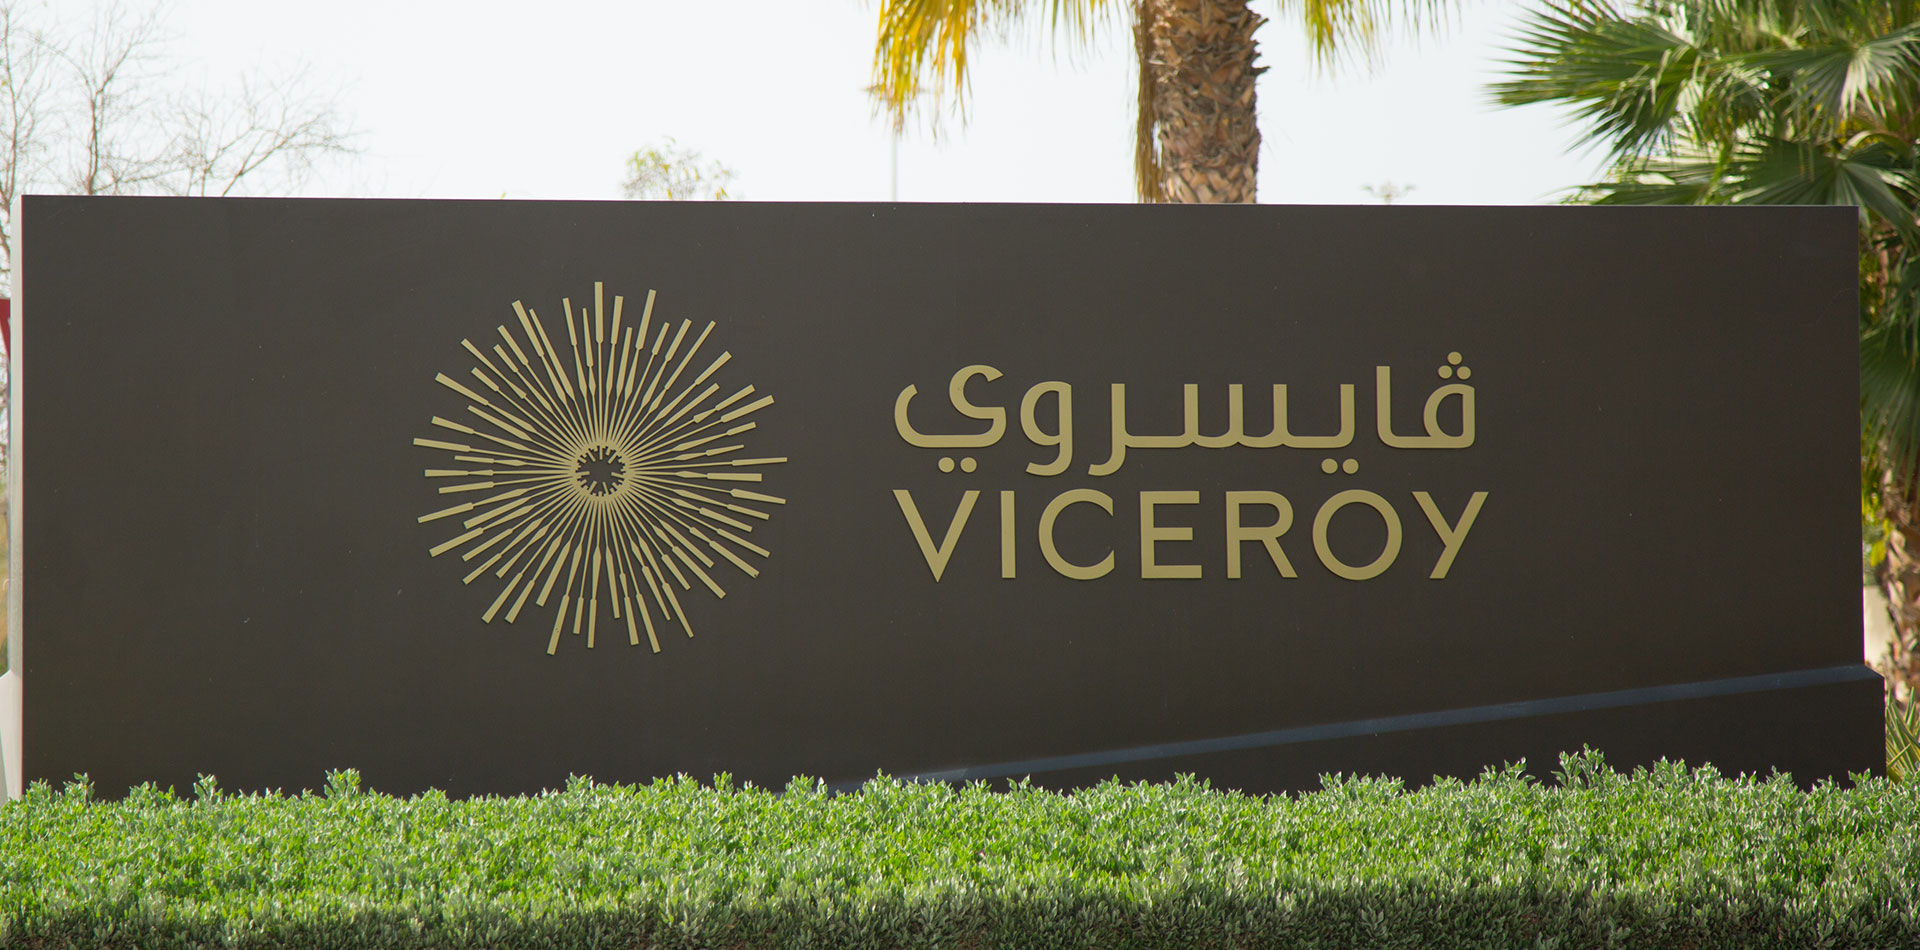 Monument Signage of Viceroy